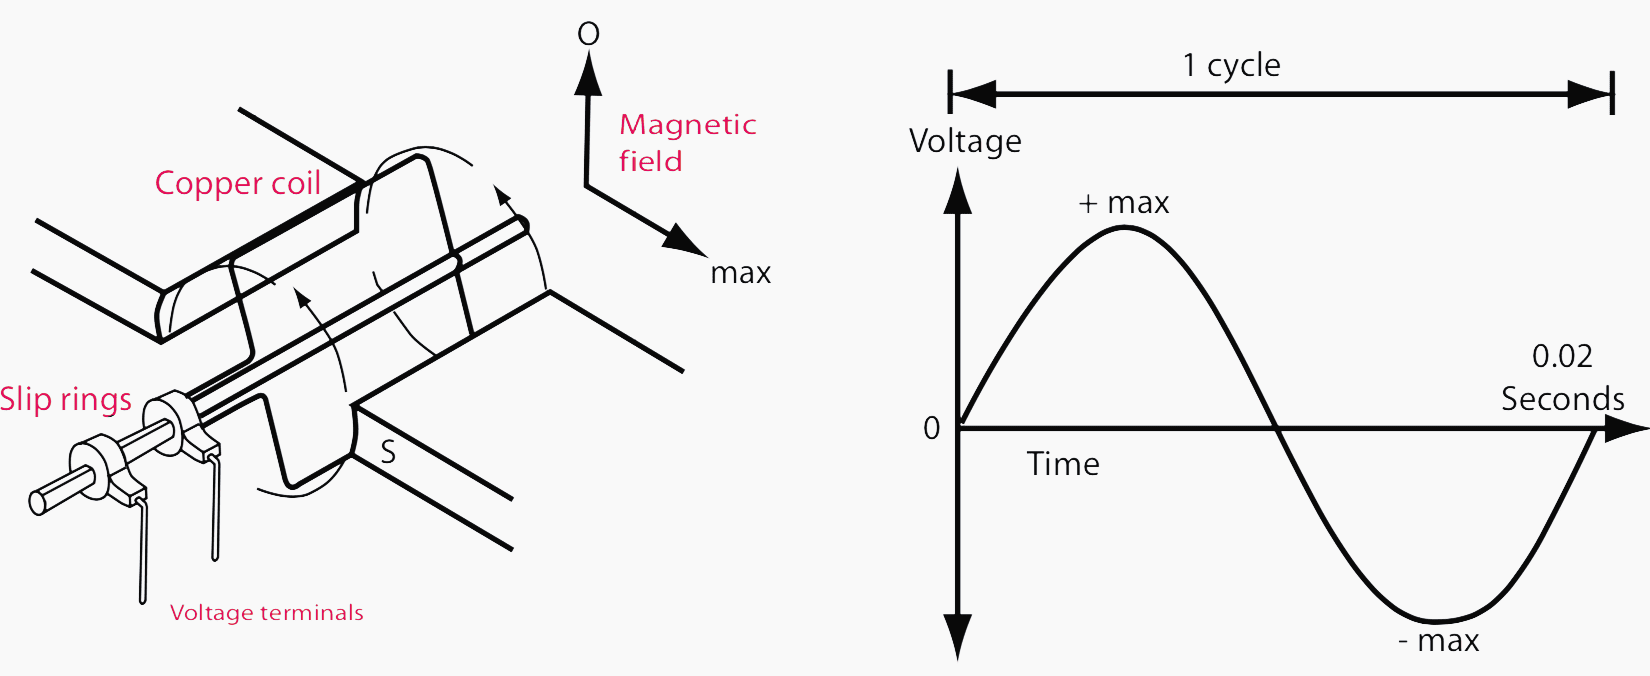 Figure 2 (left) - Simple a.c. generator; Figure 3 (right) - a.c. voltage wave form